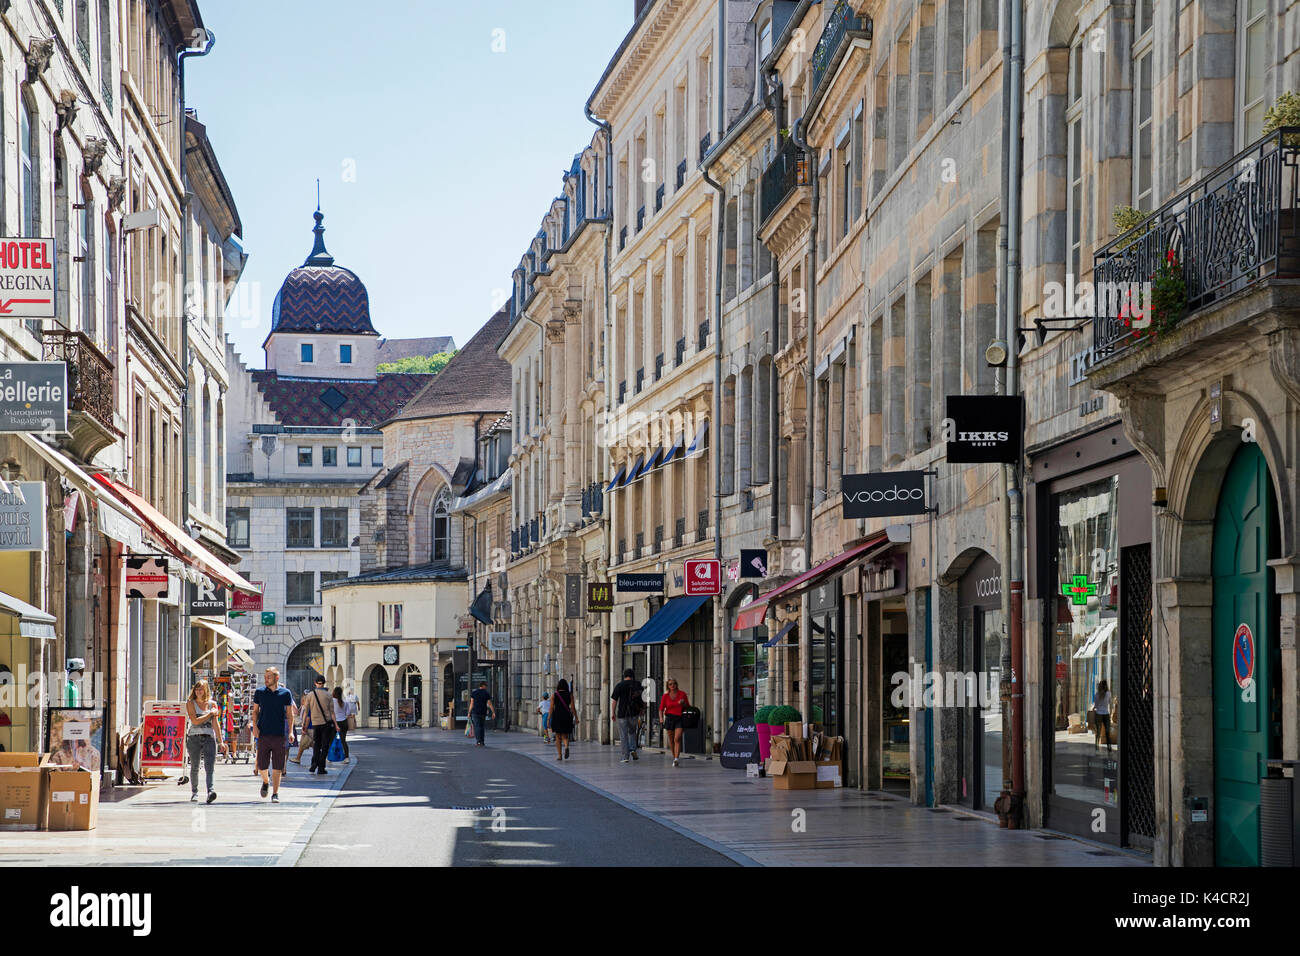 Shops in main street of the old city center of Besançon, Doubs, Bourgogne-Franche-Comté, France - Stock Image